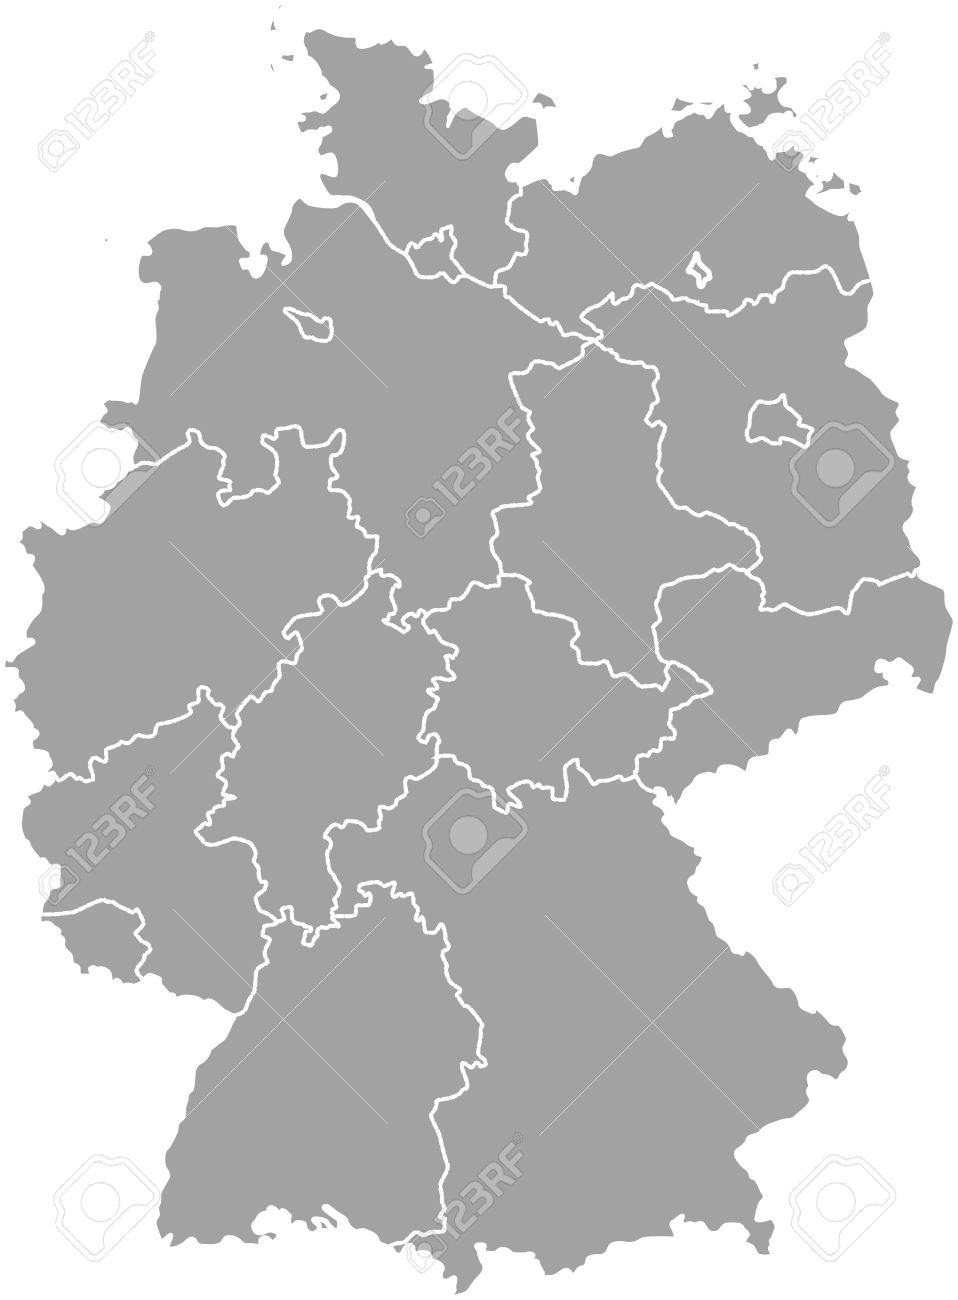 Germany Map With States.Germany Map Outline With Borders Of Provinces Or States Royalty Free